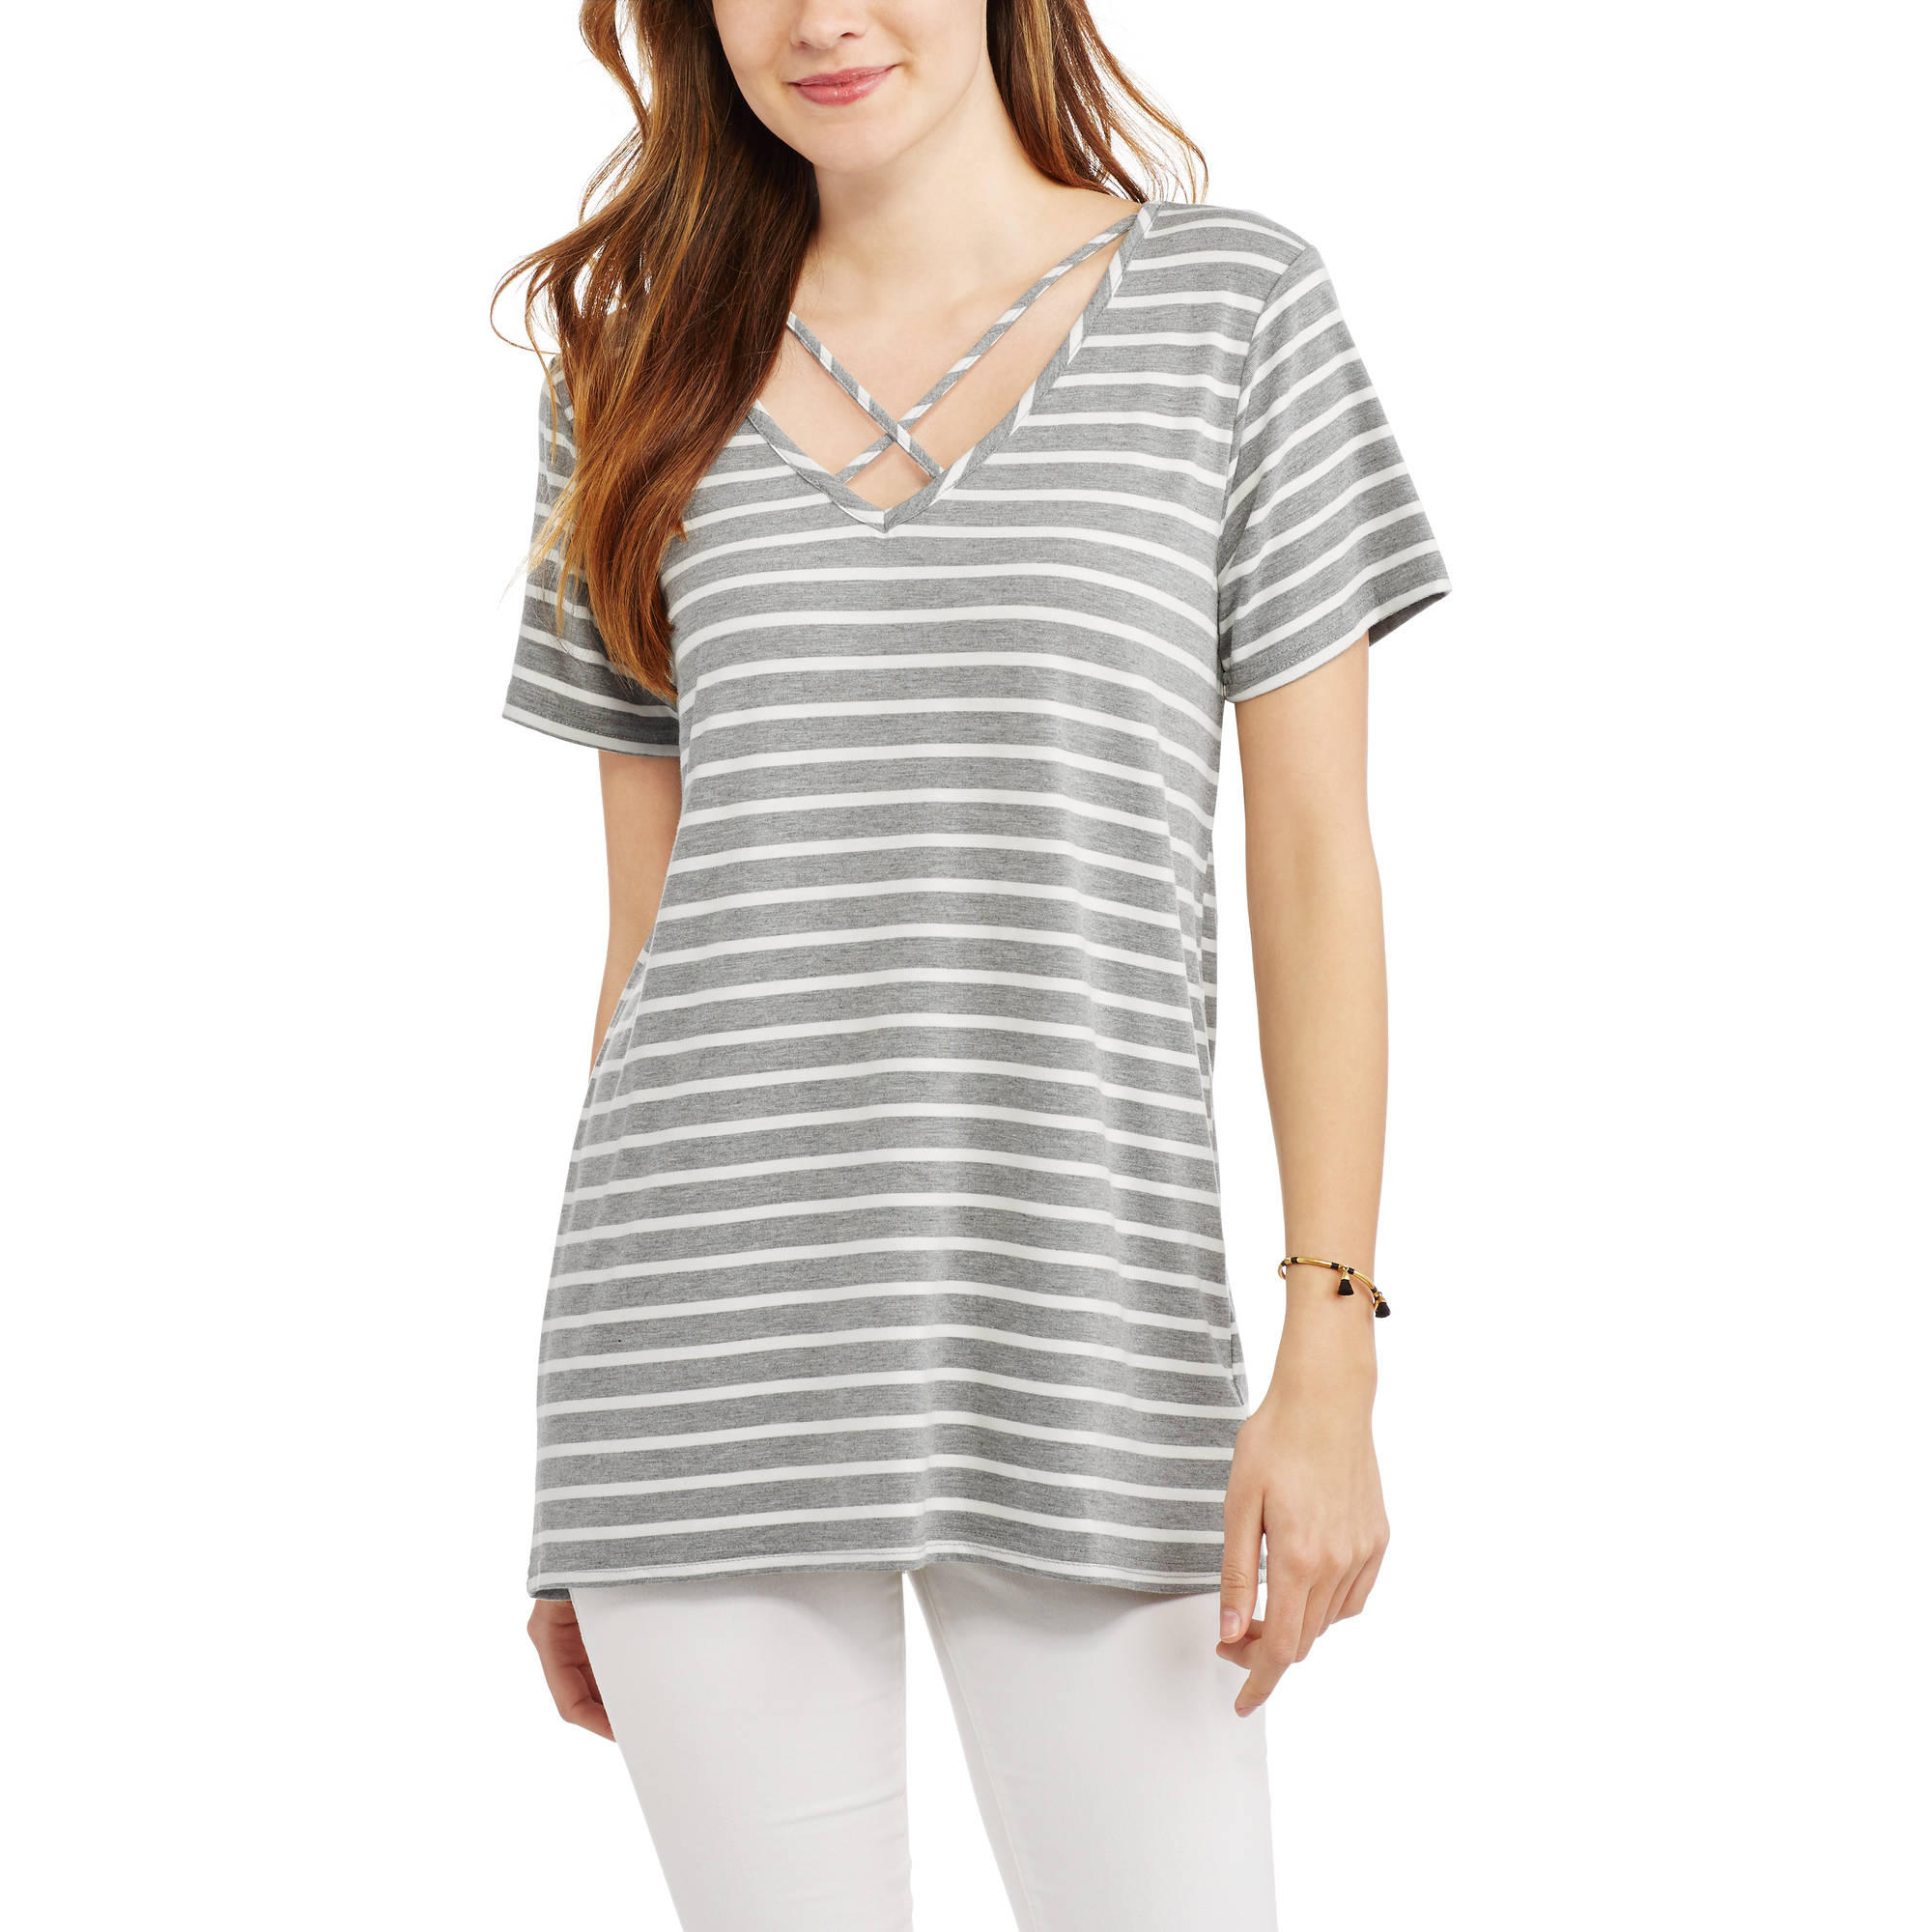 Women's Short-Sleeve Striped T-Shirt With Caging